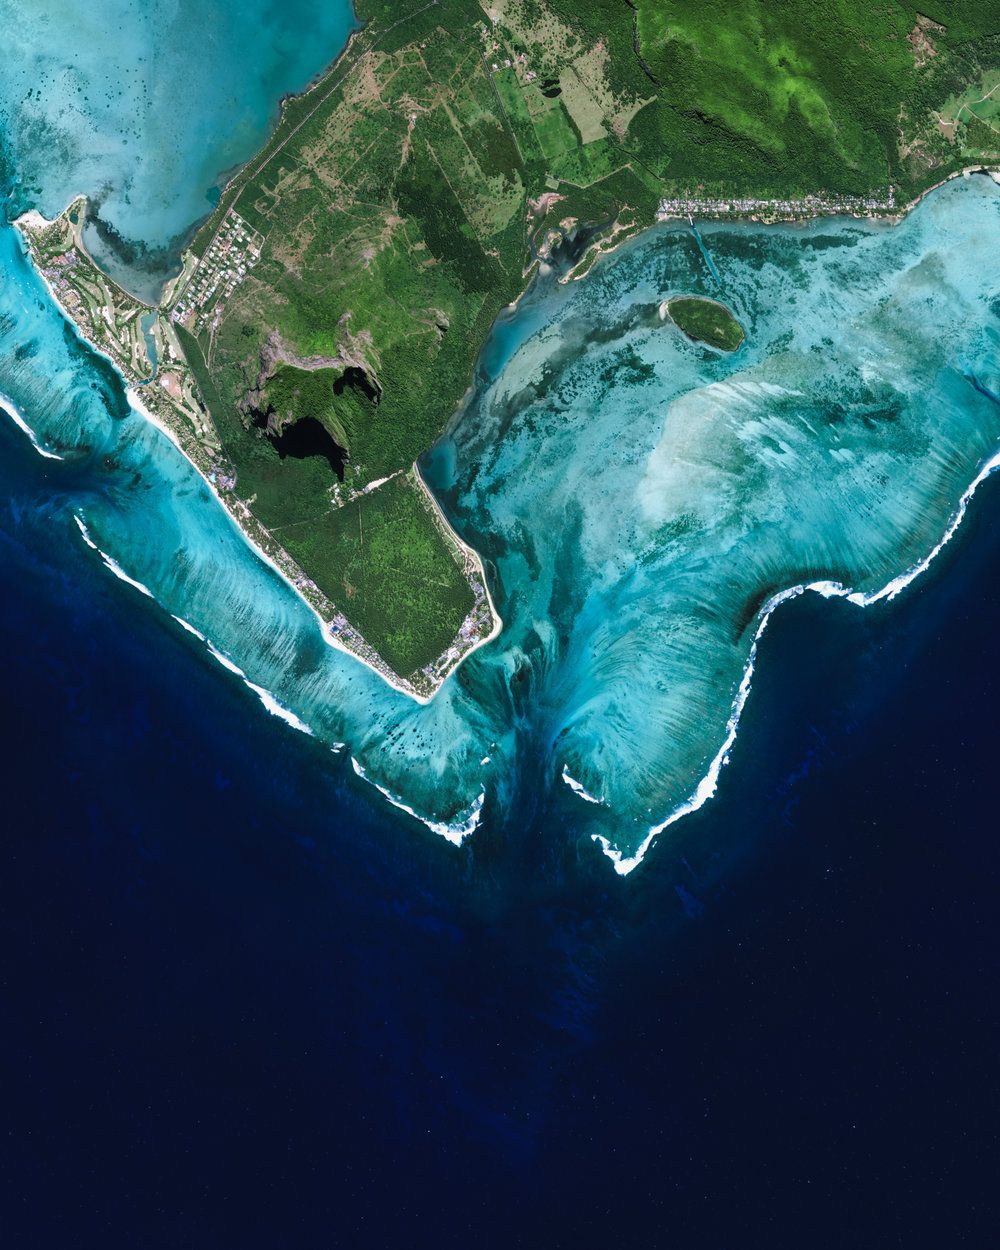 "Just off the southwestern corner of Mauritius (shown at the center of this Overview) is what appears to be an underwater waterfall. In reality, it is just the flow of underwater currents and sand patterns on the ocean floor that form this spectacular optical illusion from the aerial perspective. Mauritius is an island nation in the Indian Ocean, roughly 1,200 miles (2,000 km) off the southeastern coast of Africa.  20°28'23.9""S, 57°18'33.3""E  Source imagery: DigitalGlobe"